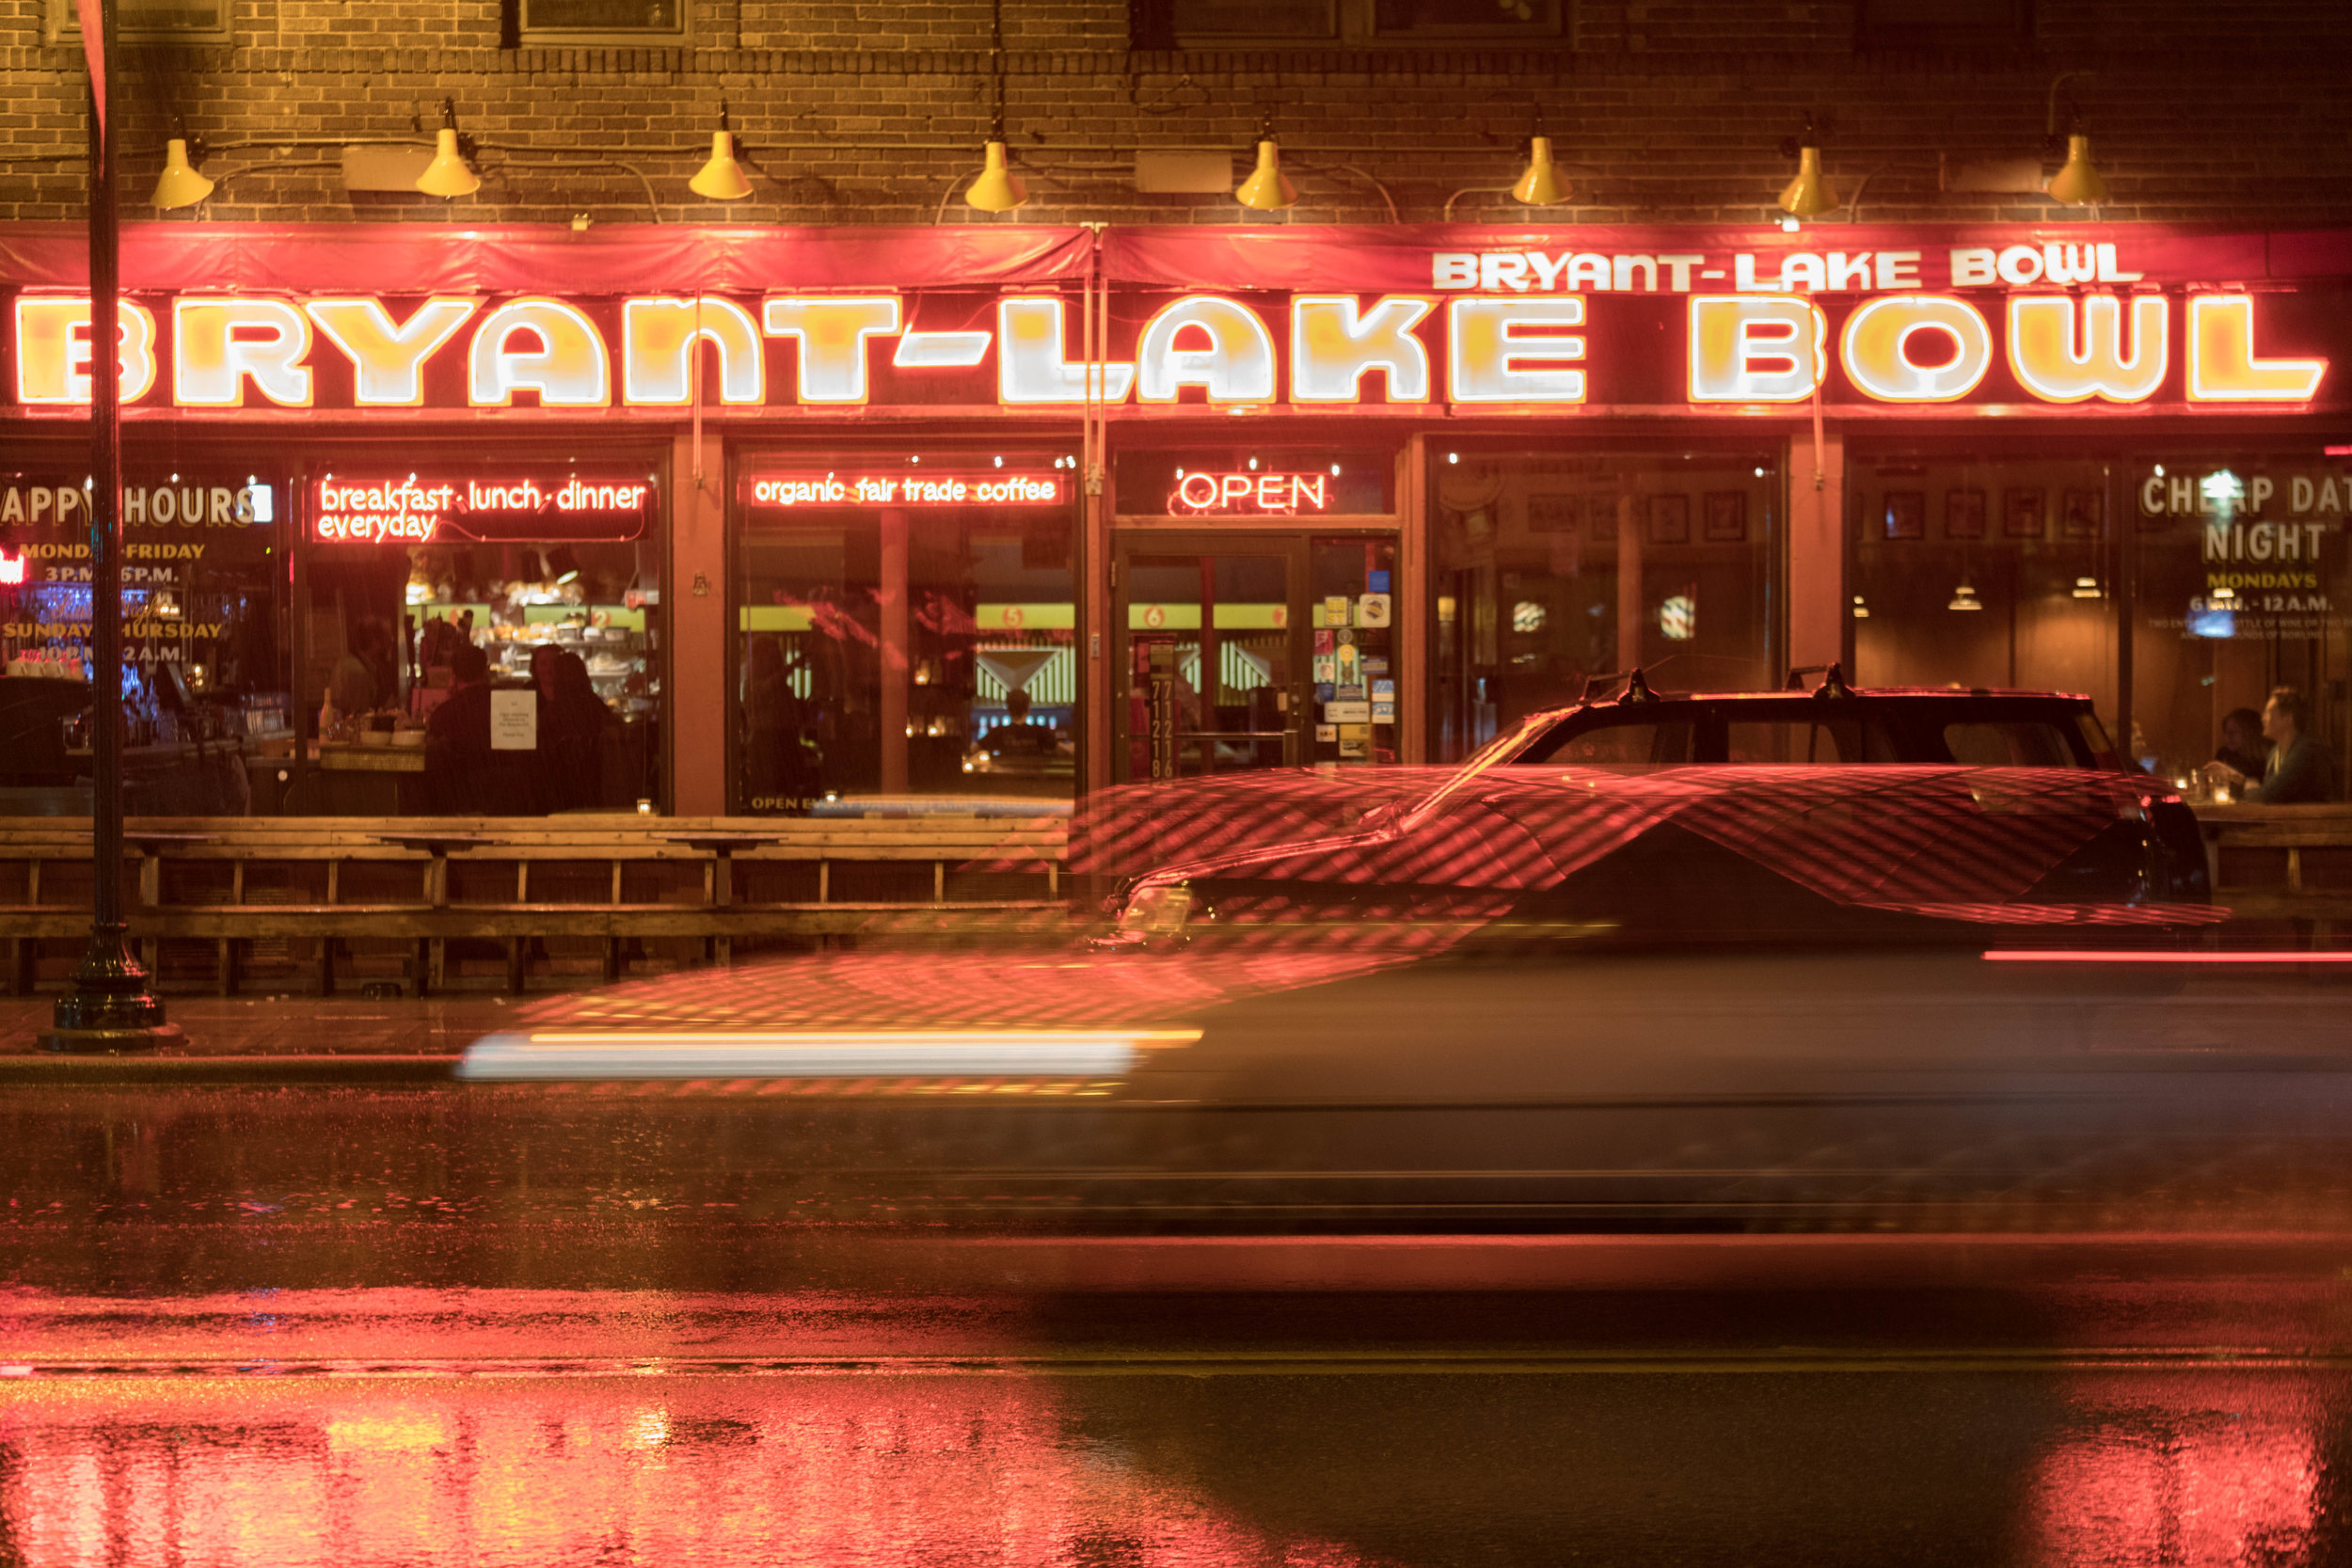 bryant-lake bowl at night - minneapolis, minnesota   from US$15